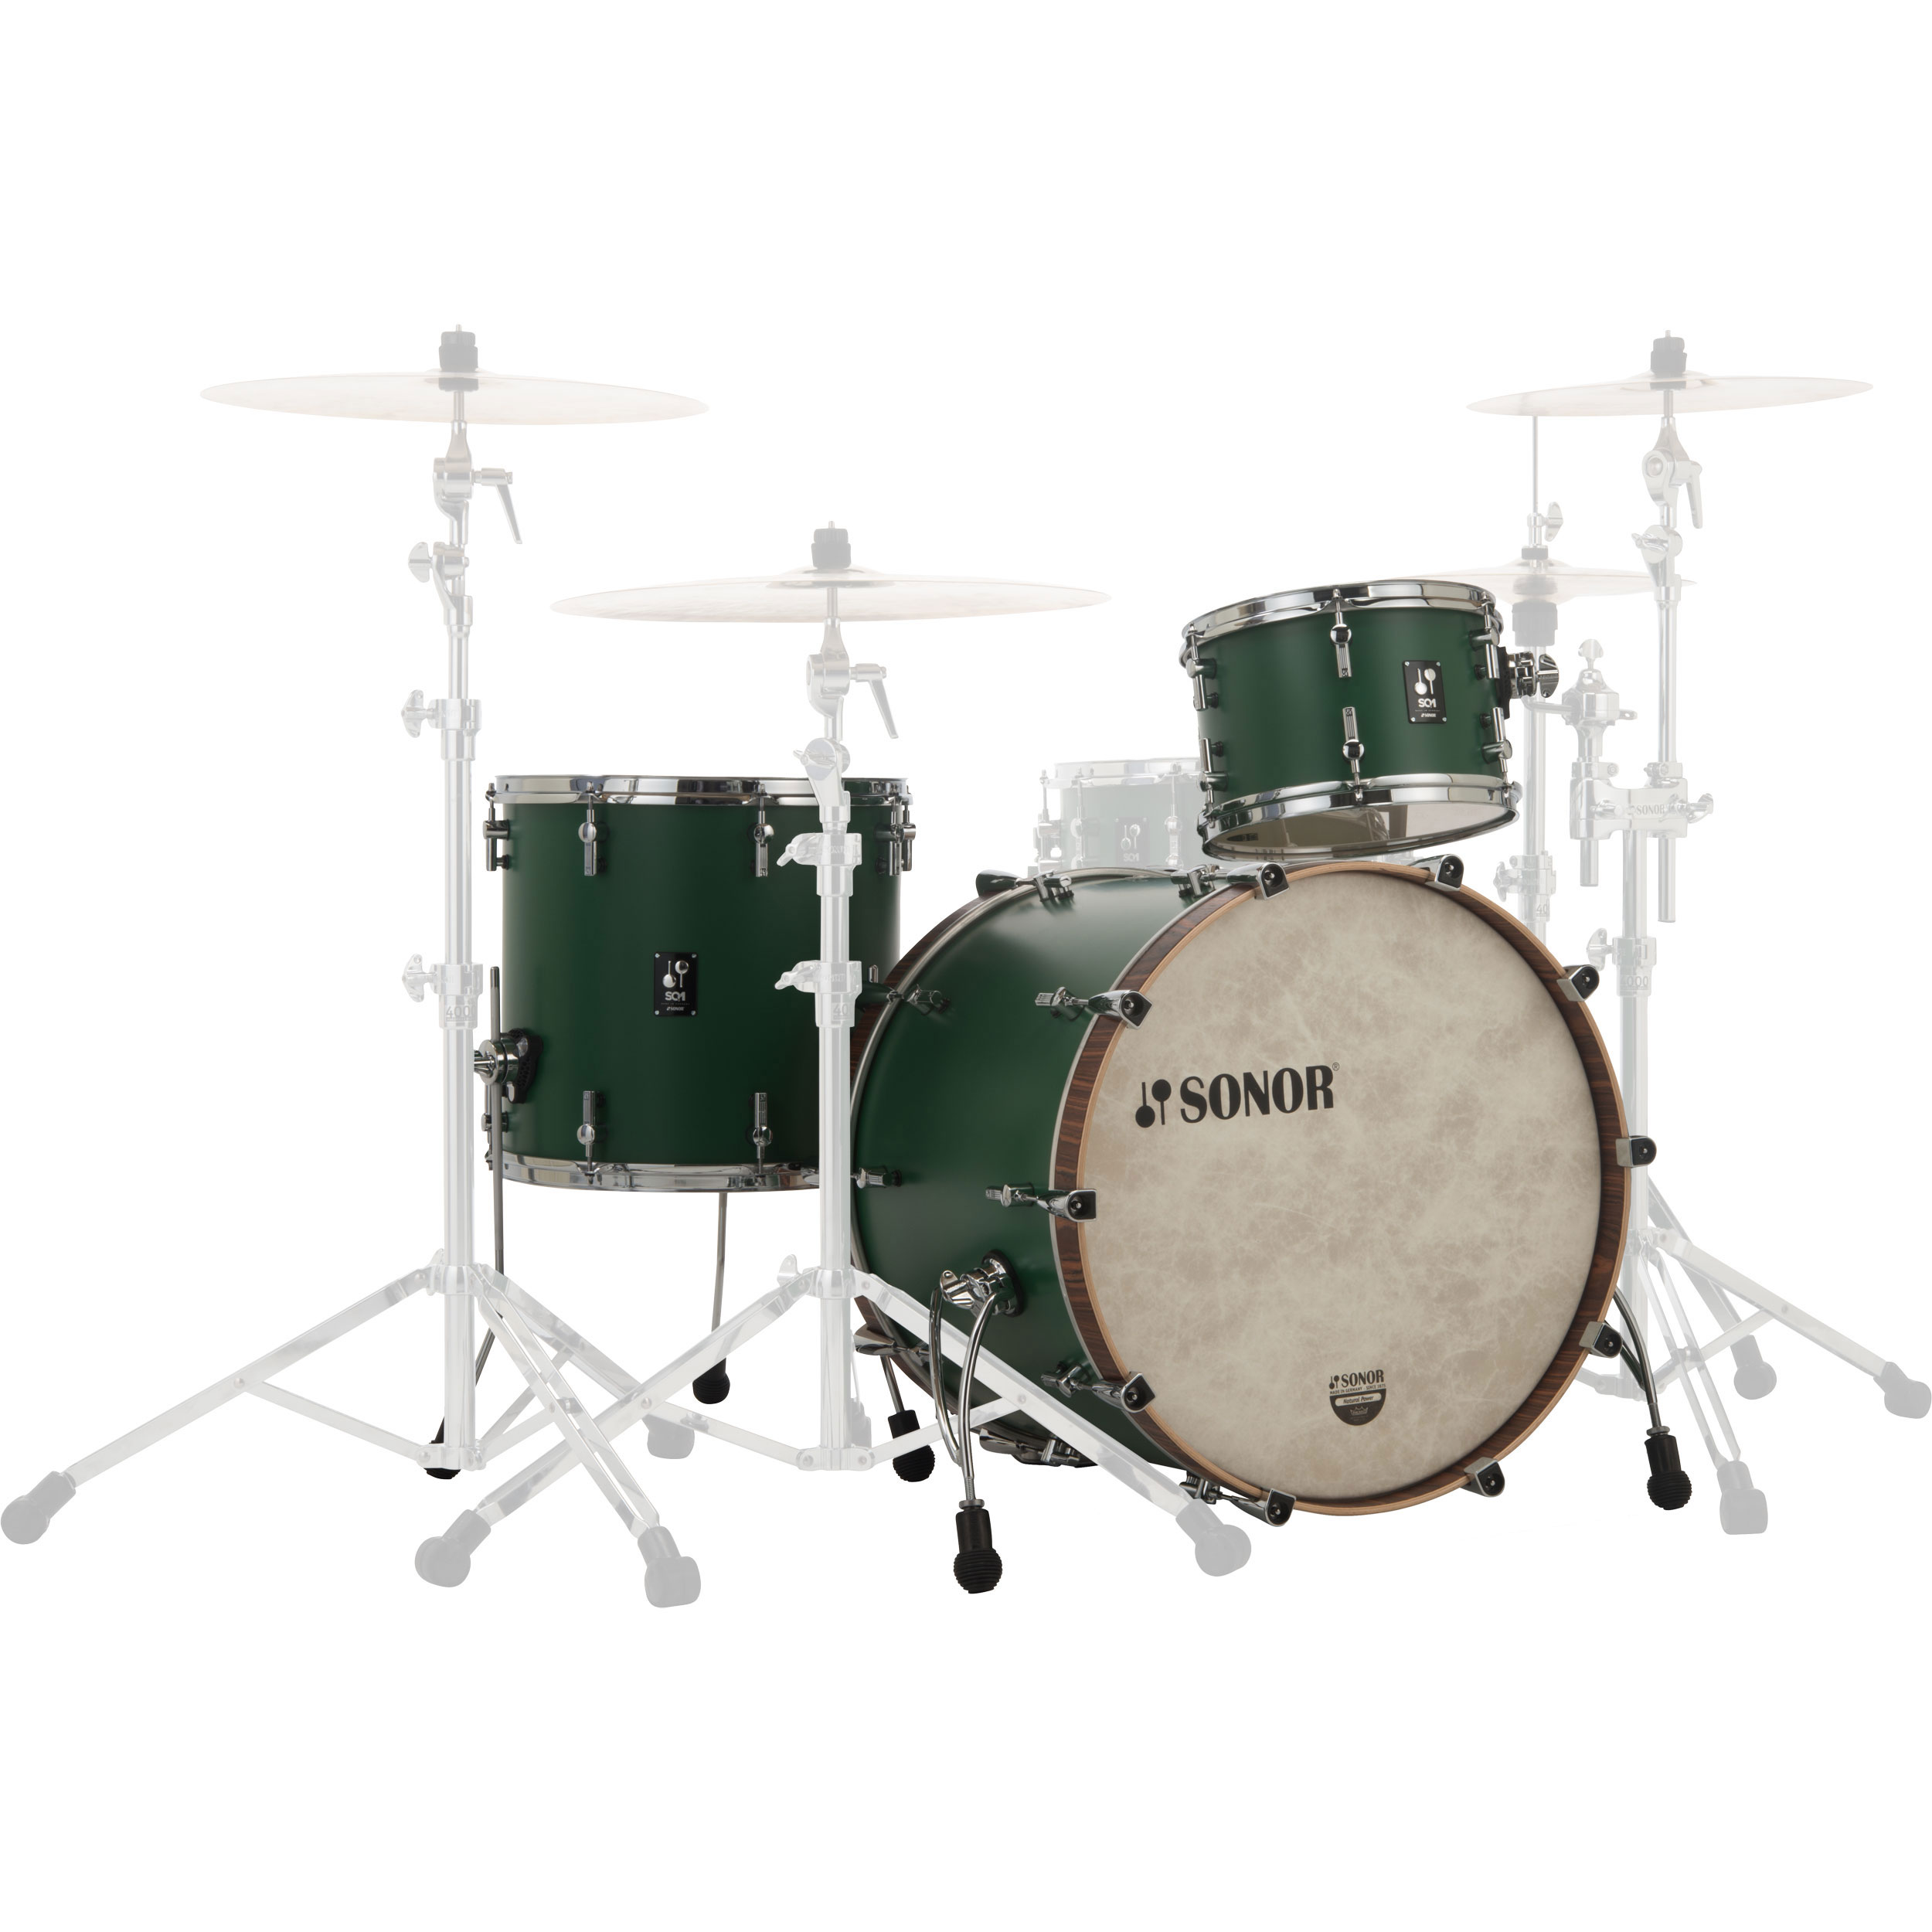 "Sonor SQ1 3-Piece Drum Set Shell Pack (24"" Bass, 13/16"" Toms)"